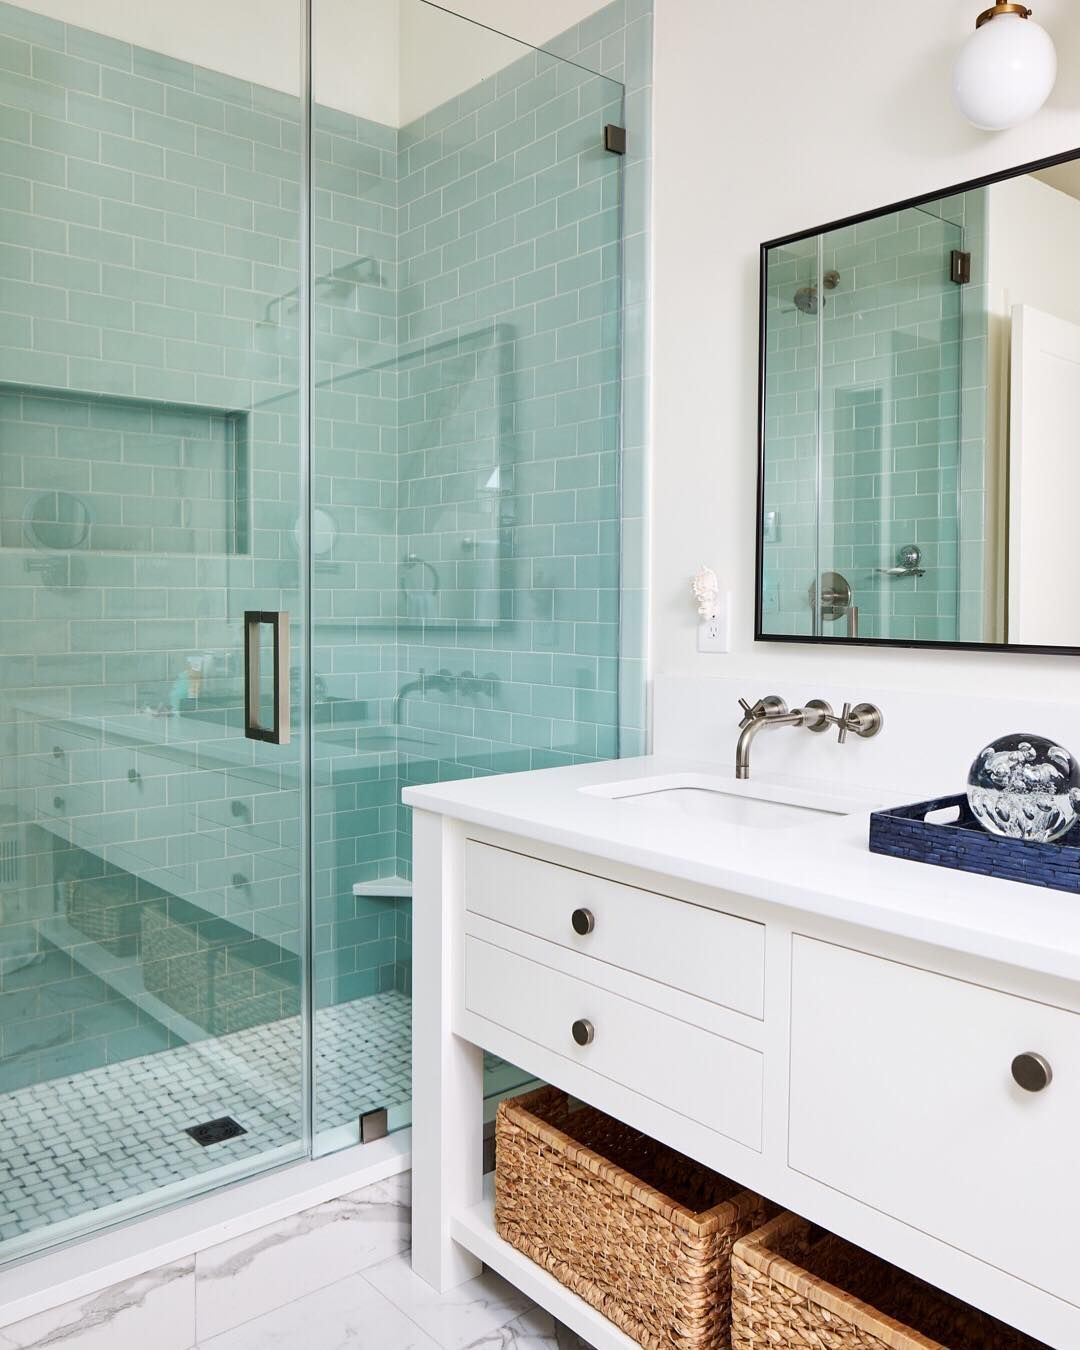 Studio Miel On Instagram This Is The Kind Of Shower That Makes You Want To Use All The Hot Water Aqua Bathroom Bathroom Renovation Shower Remodel